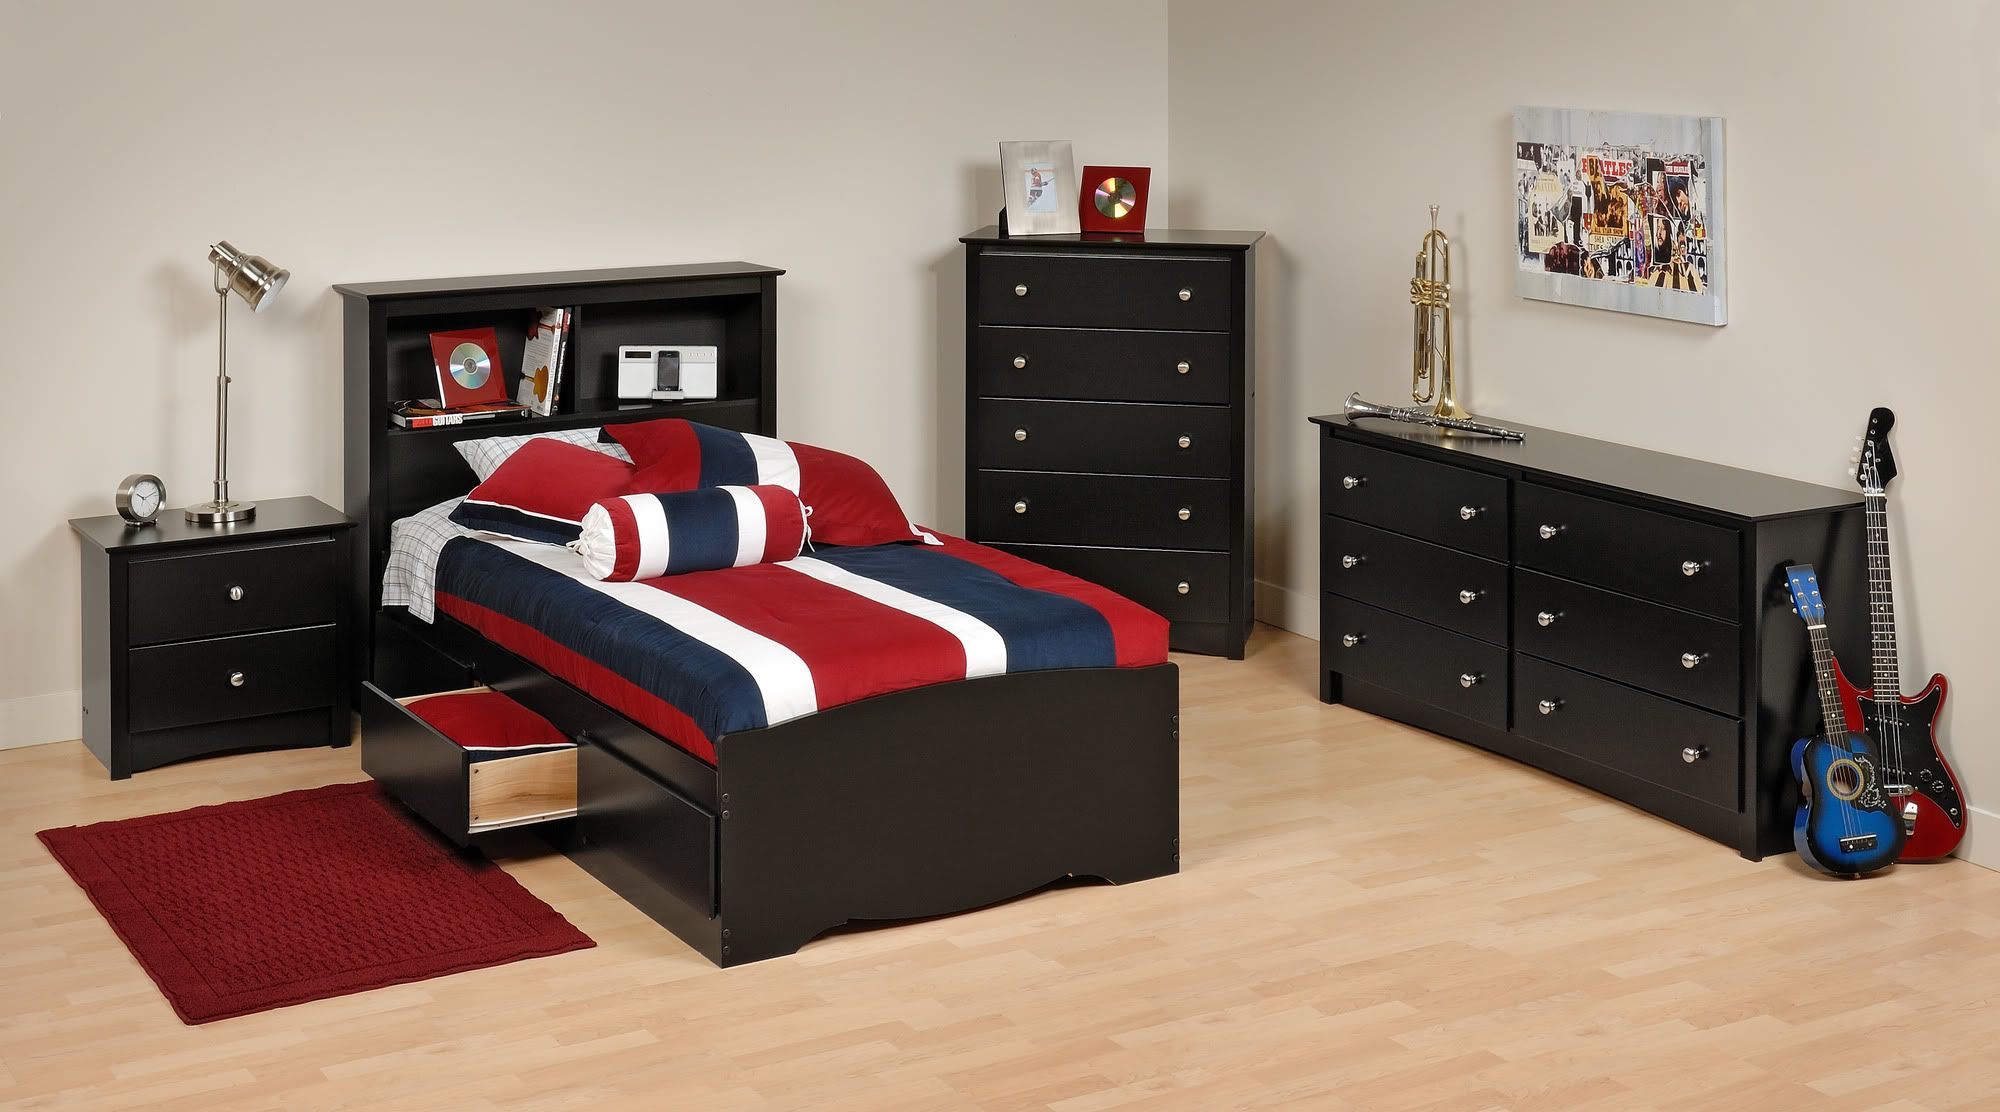 Alluring Boys Bedroom Set with Twin Size Bookcase Bed and Simple Rectangular Dresser and Drawer